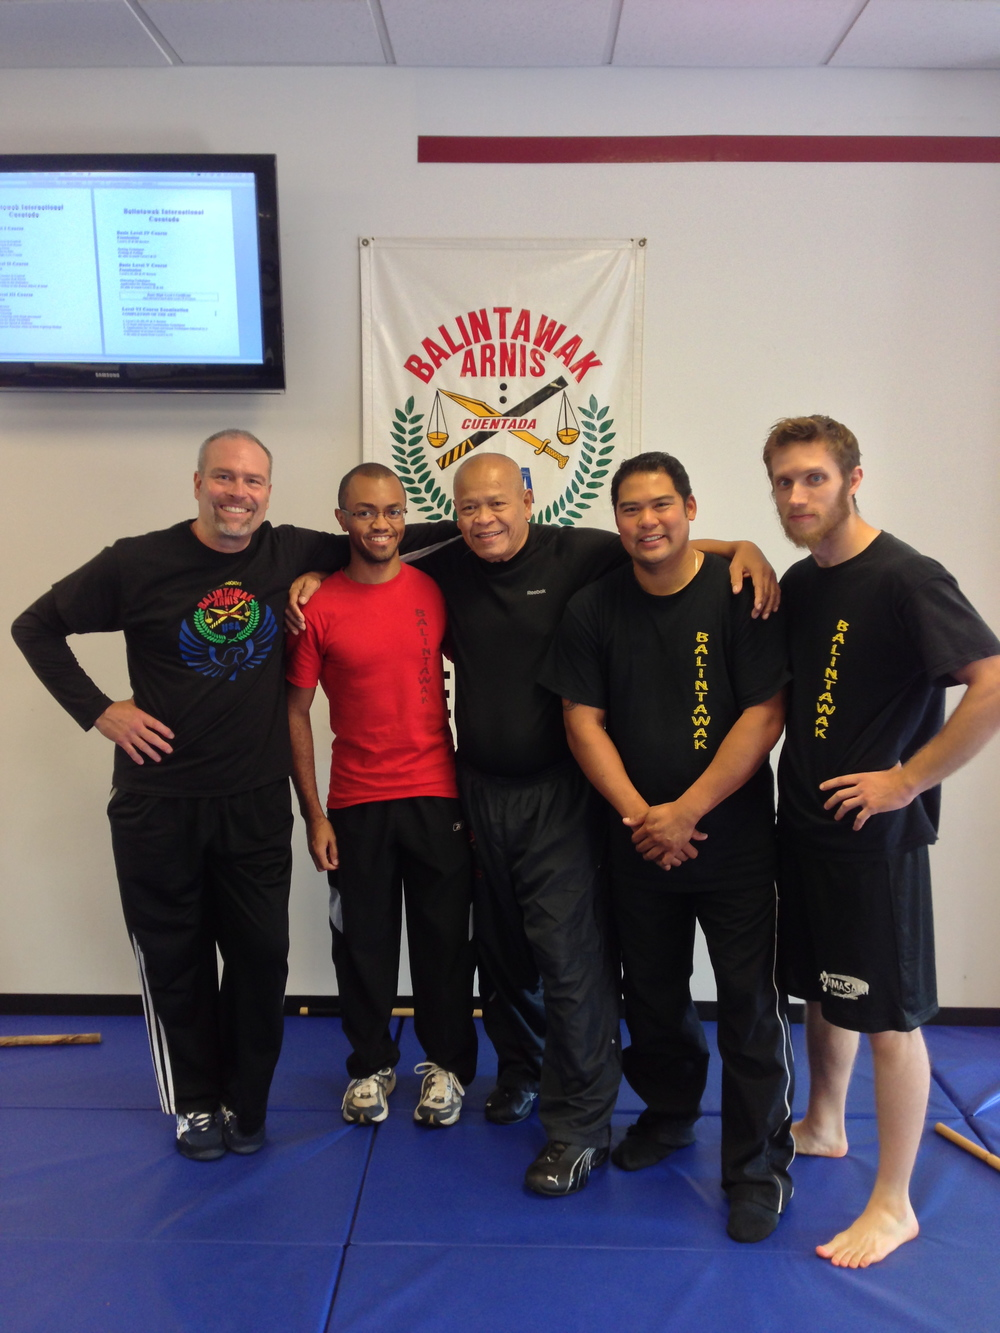 World Camp 2012 (L-R) Scott Meyer, Kinney Thompson, GM Bobby Taboada, Nebrido Nocon, Ben Winn